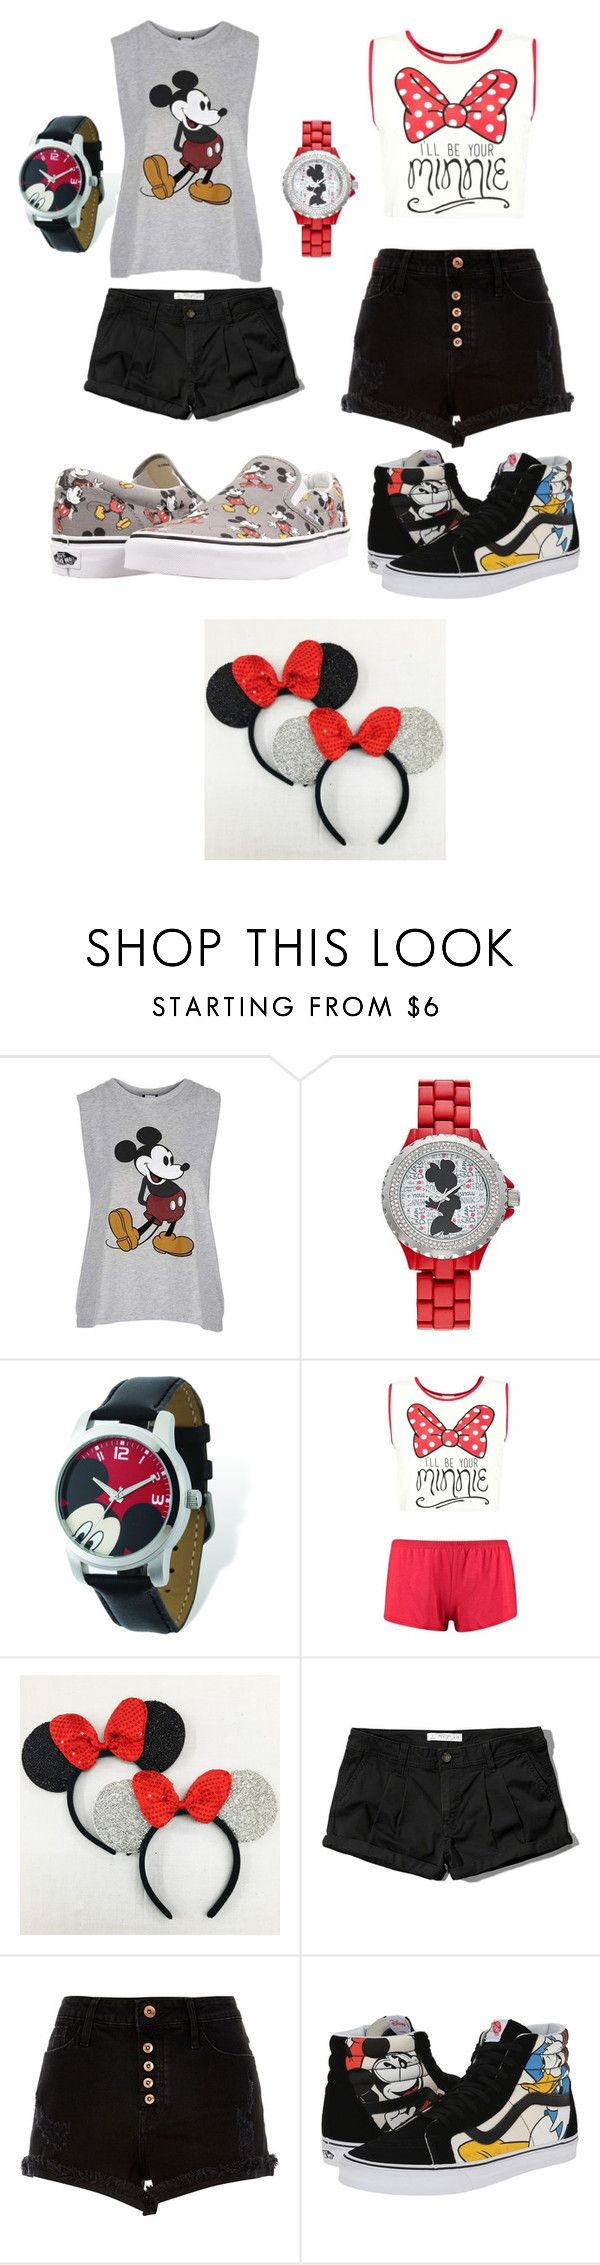 """BFF outfits for Disneyland/ Disney world"" by ejneeley ❤ liked on Polyvore featuring Topshop, Disney, Abercrombie & Fitch, River Island and Vans"